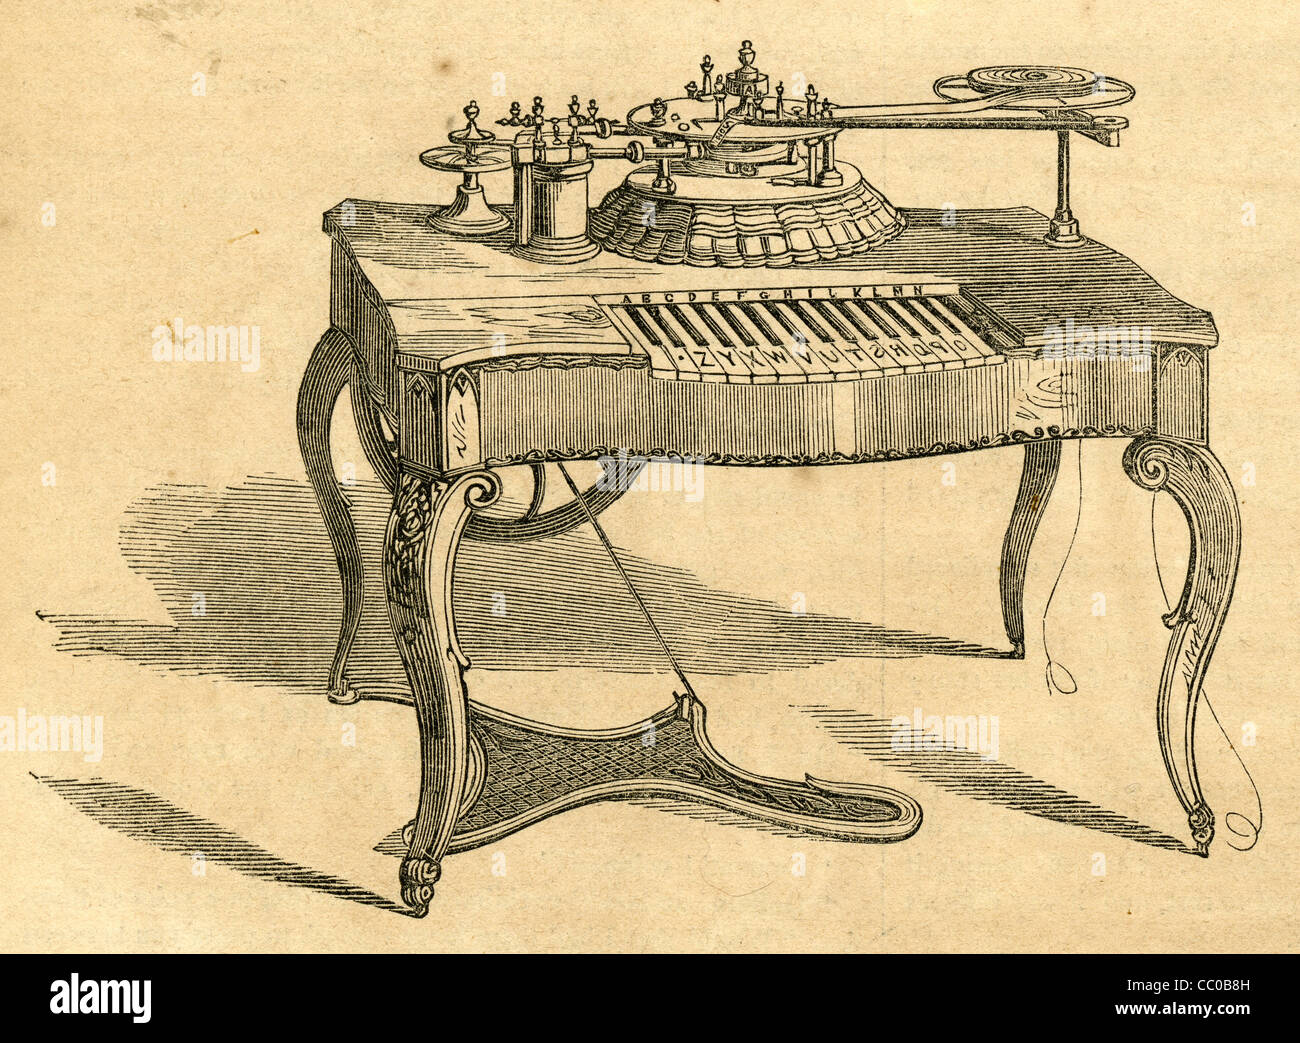 1854 engraving, House's American Printing Telegraph, with A to Z style piano keys for typing. - Stock Image